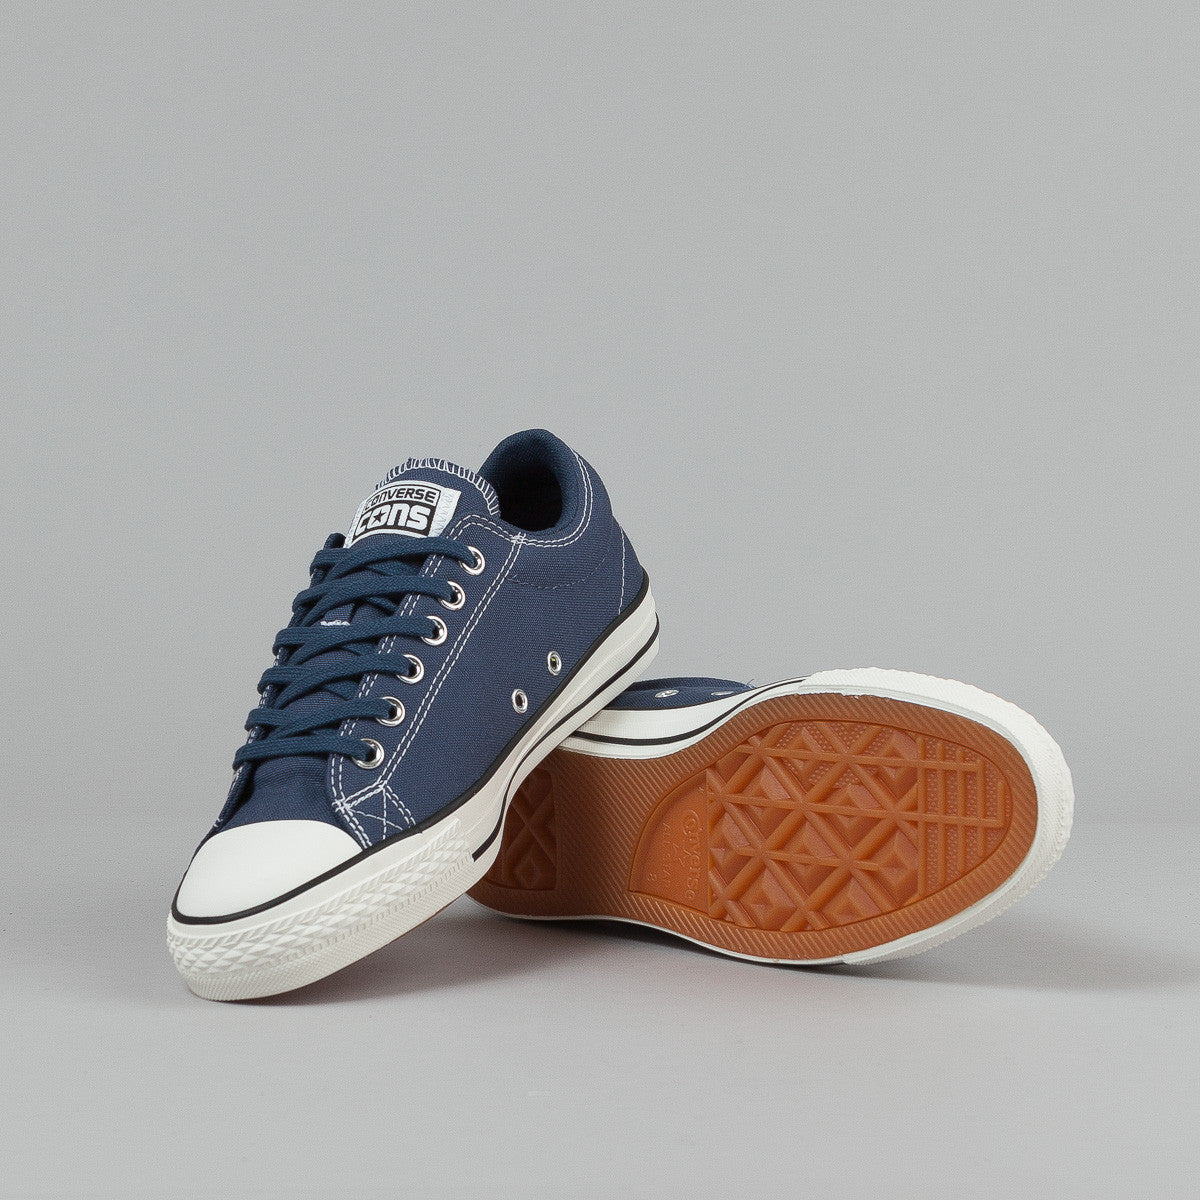 Converse X Fragment CTS OX Shoes - Navy